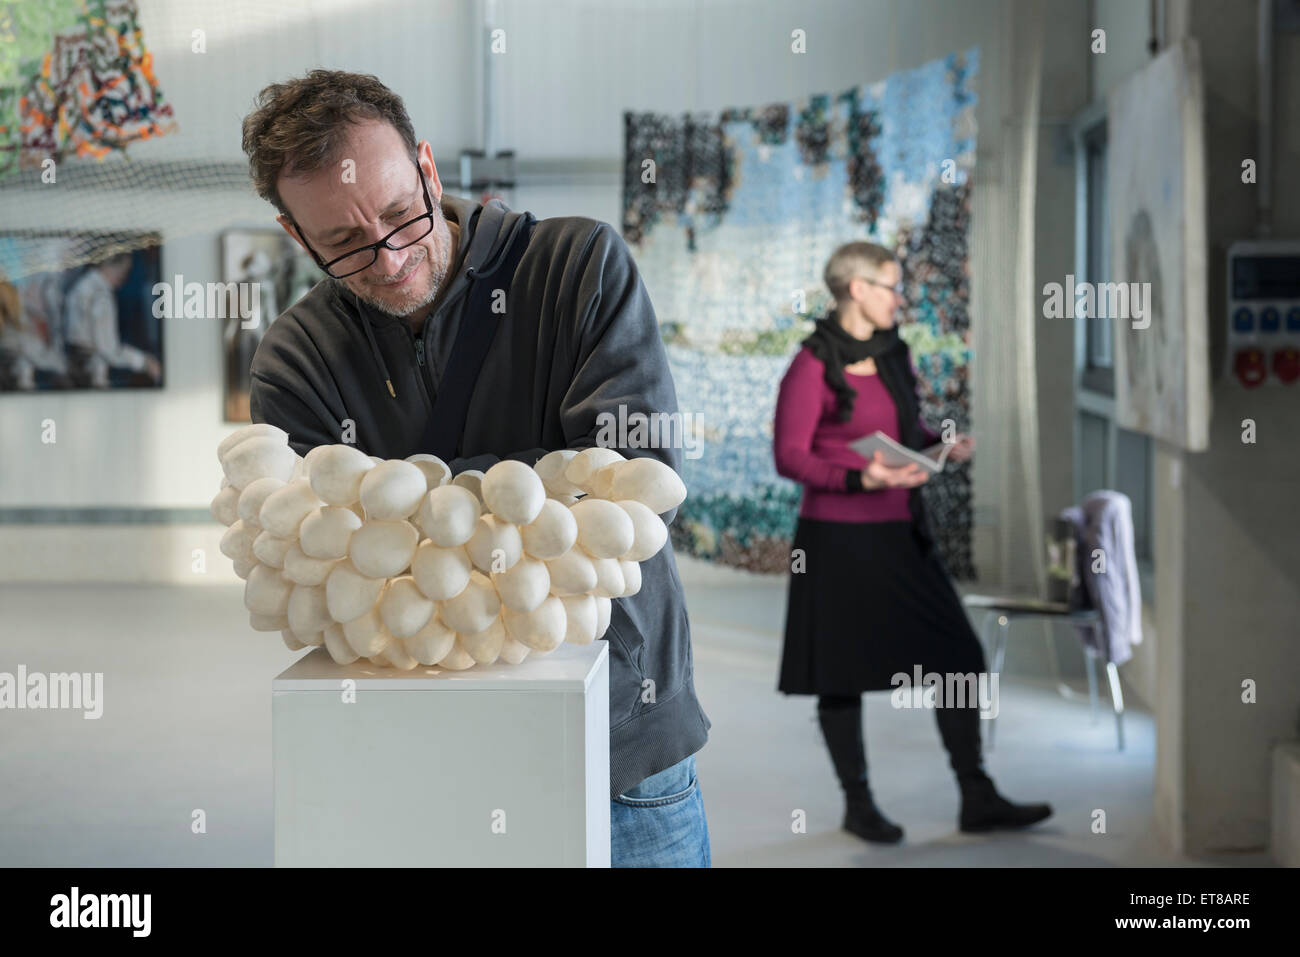 Couple in an art museum, Bavaria, Germany - Stock Image